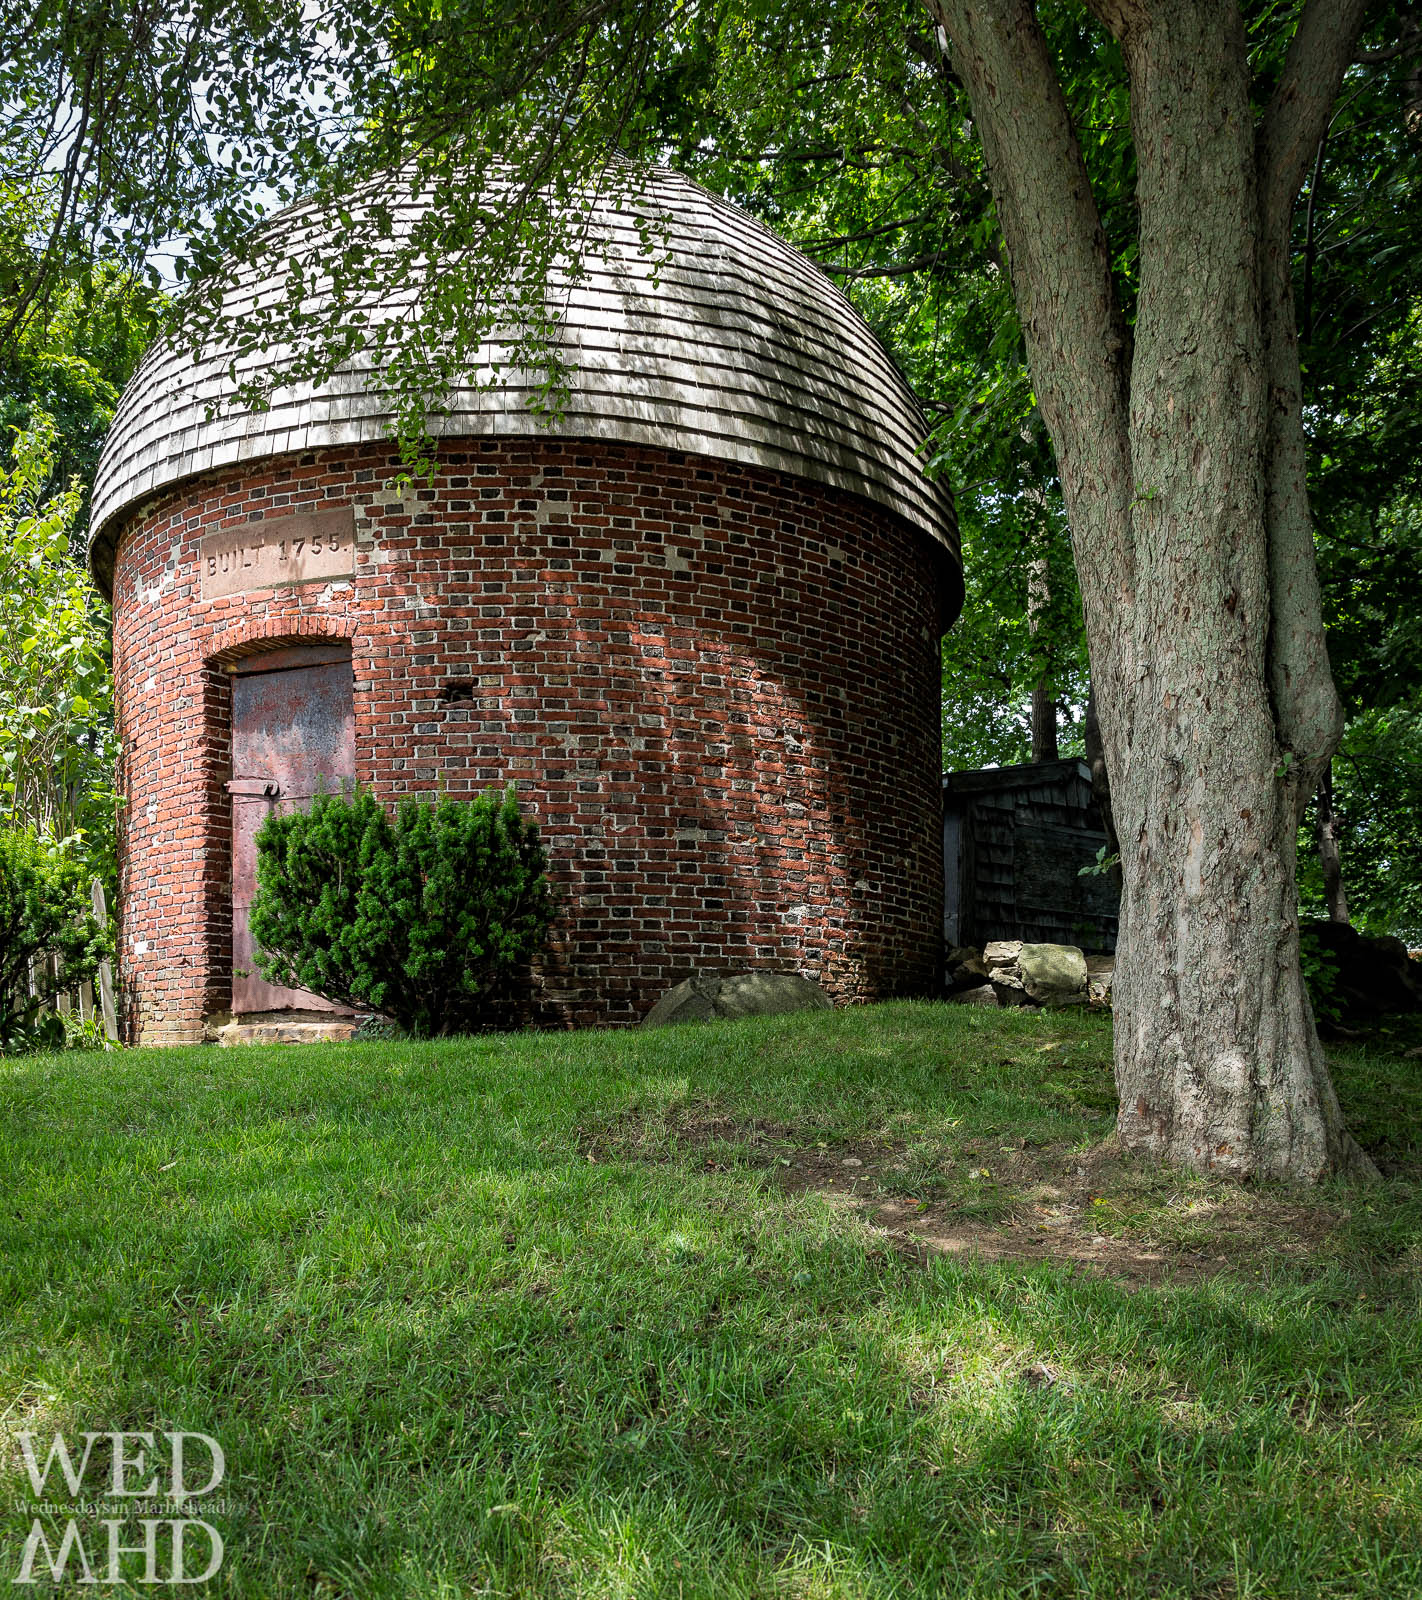 Marblehead Powder House – Built in 1755